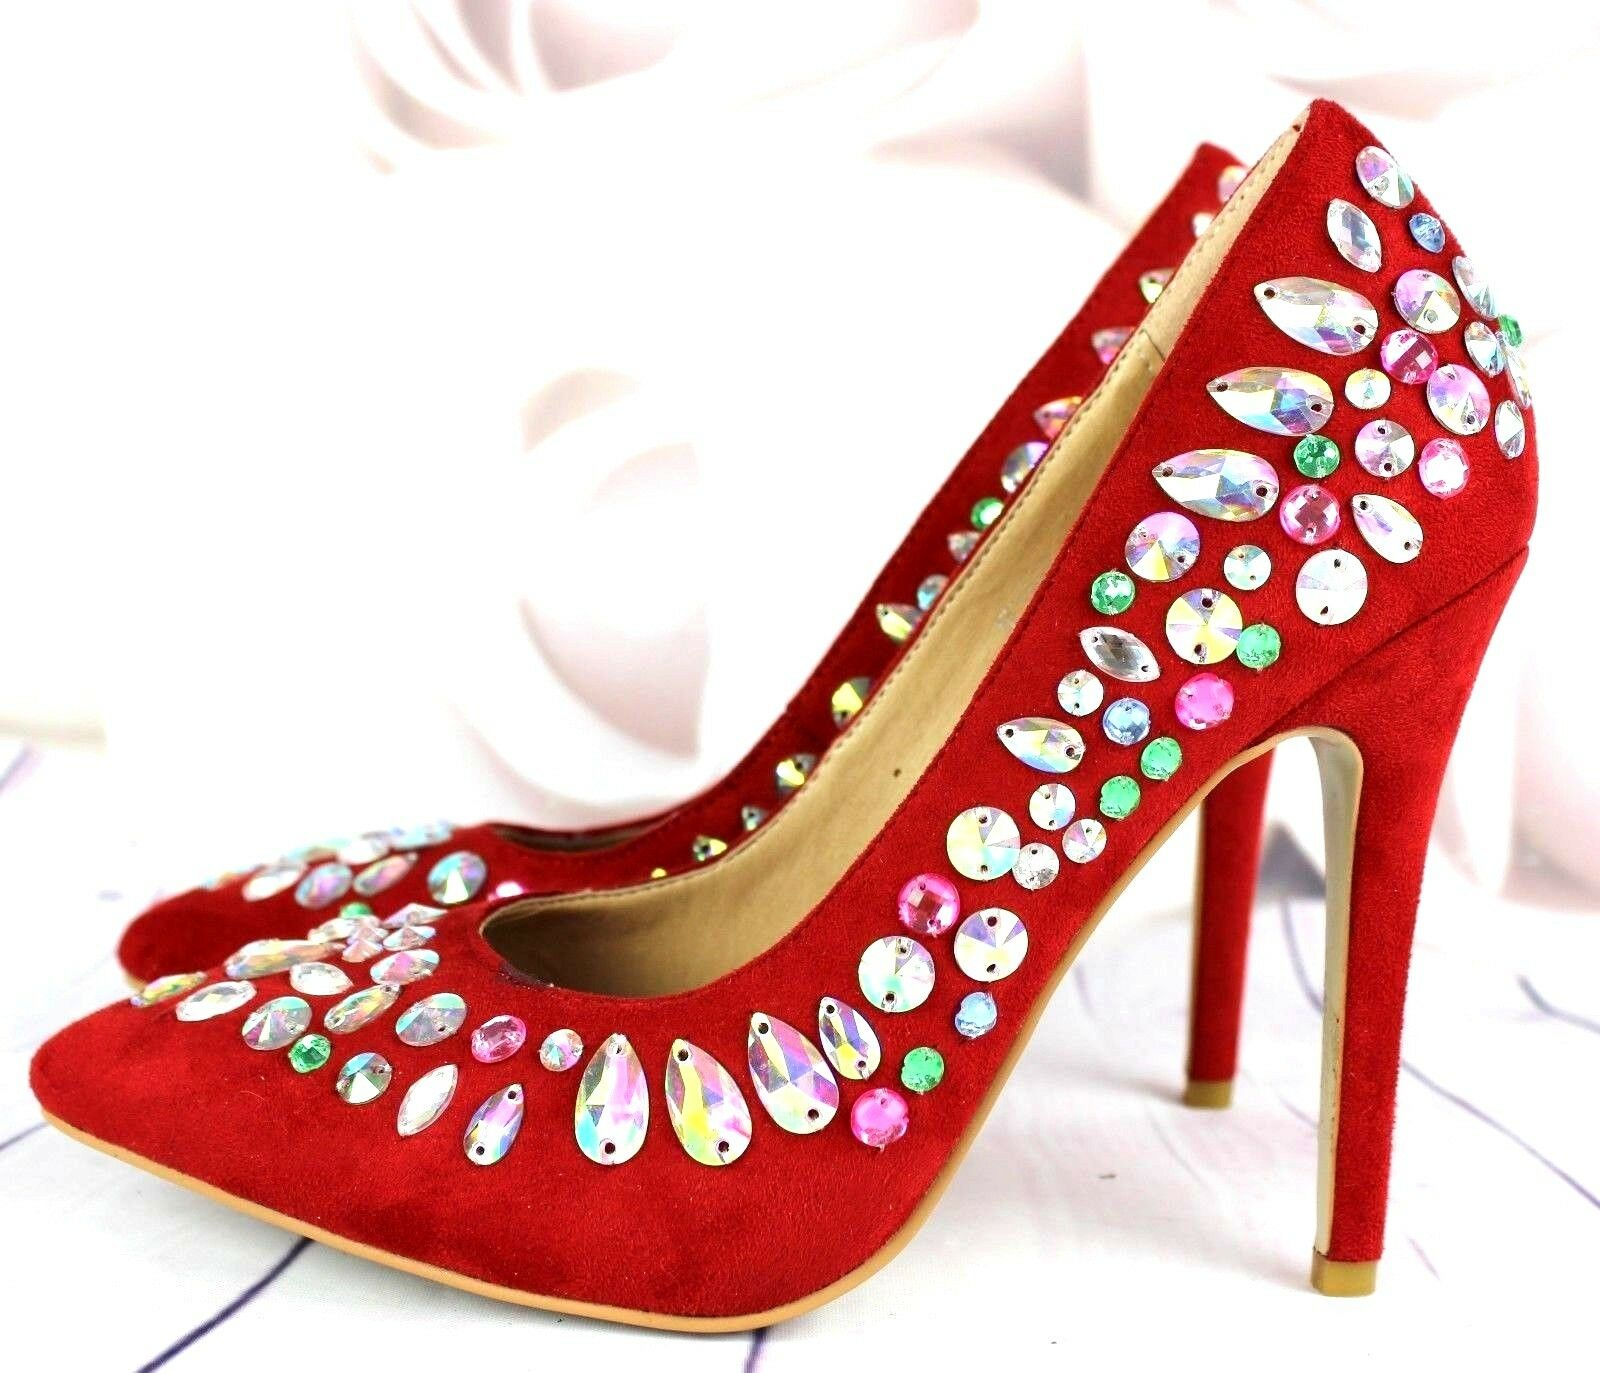 New Womens Red Jewel Pointed Toe Stiletto High Heel 4 Court Shoes Size 3 4 Heel 5 f751d8